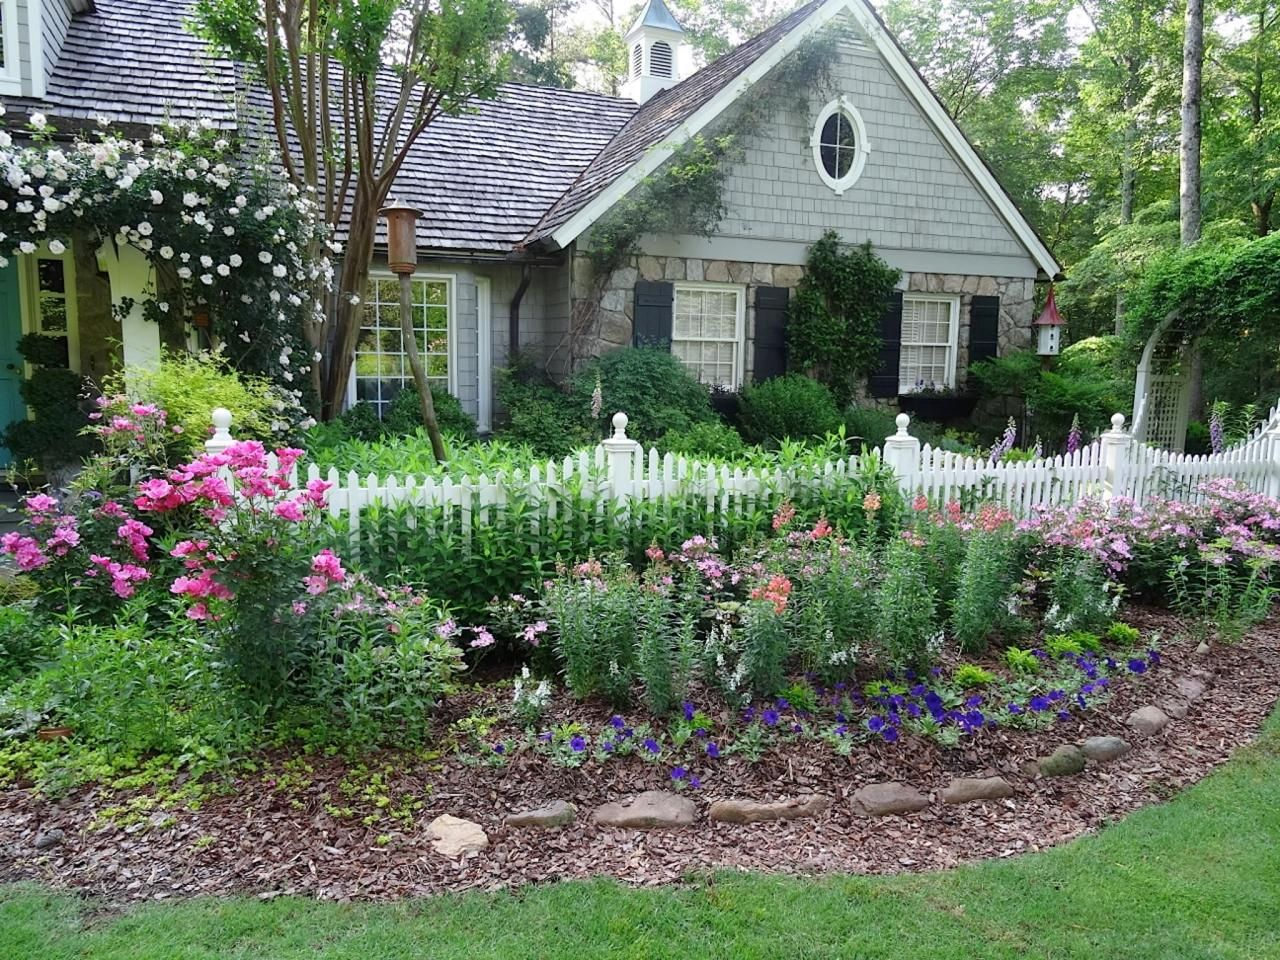 989 best fence ideas images on pinterest fence ideas garden